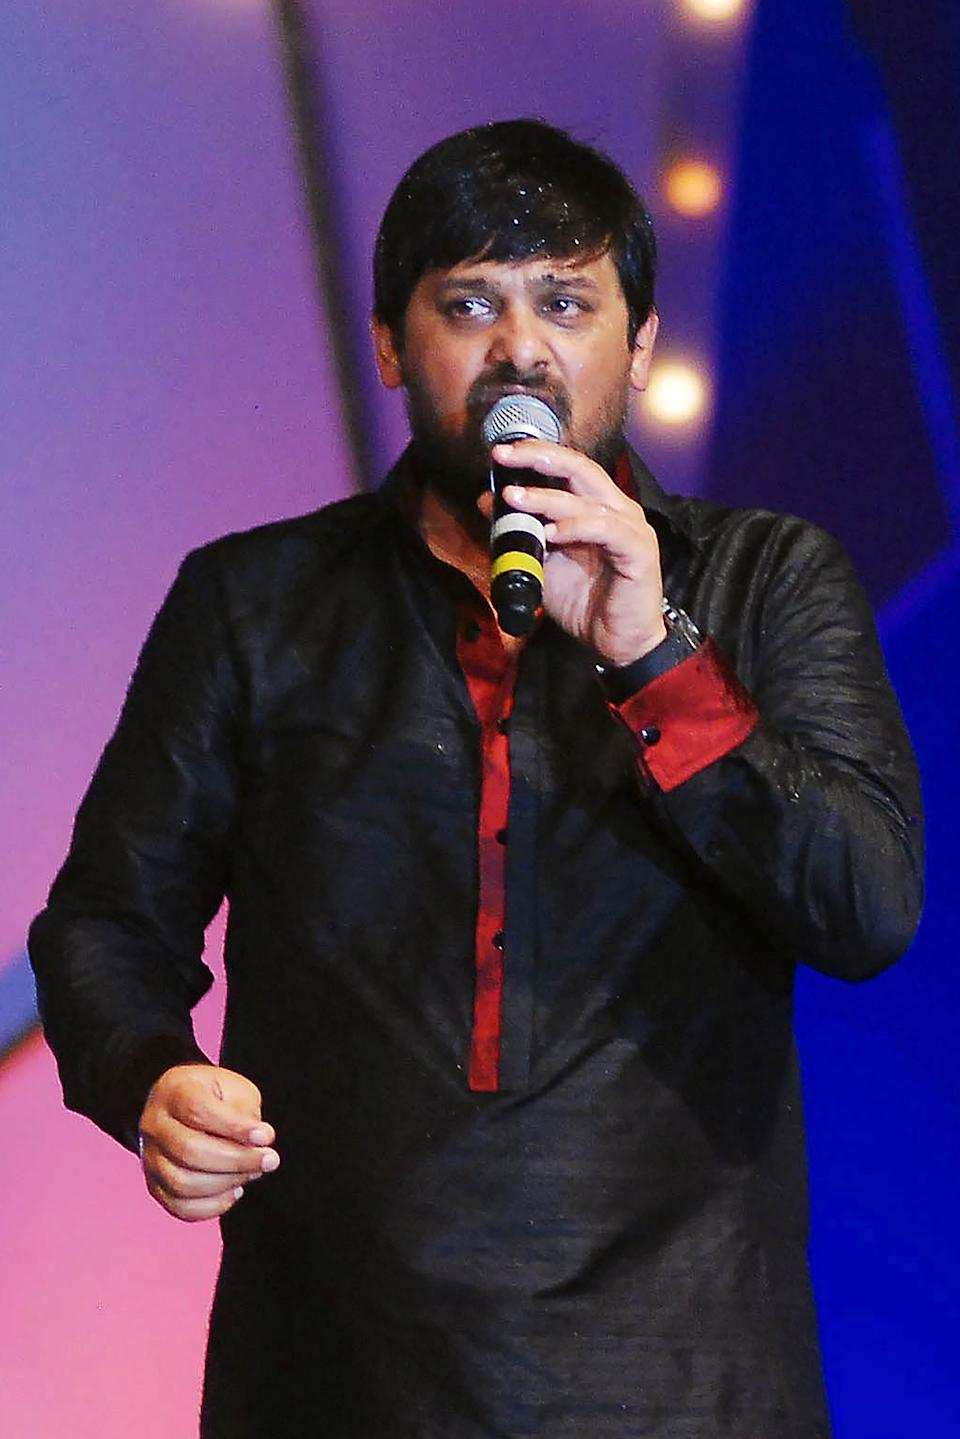 Bollywood composer, part of the popular composer duo Sajid-Wajid, passed away of a cardiac arrest on May 31, 2020. Wajid Khan, who had tested positive of COVID-19, was 42. <br>Khan had been suffering from kidney ailment and had undergone a transplant. He is known for his compositions for popular Salman Khan films such as the Dabangg franchise, Wanted, Hello Brother and Ek Tha Tiger. <br><br><em><strong>Image credit:</strong></em> (Photo by STR / AFP) (Photo by STR/AFP via Getty Images)